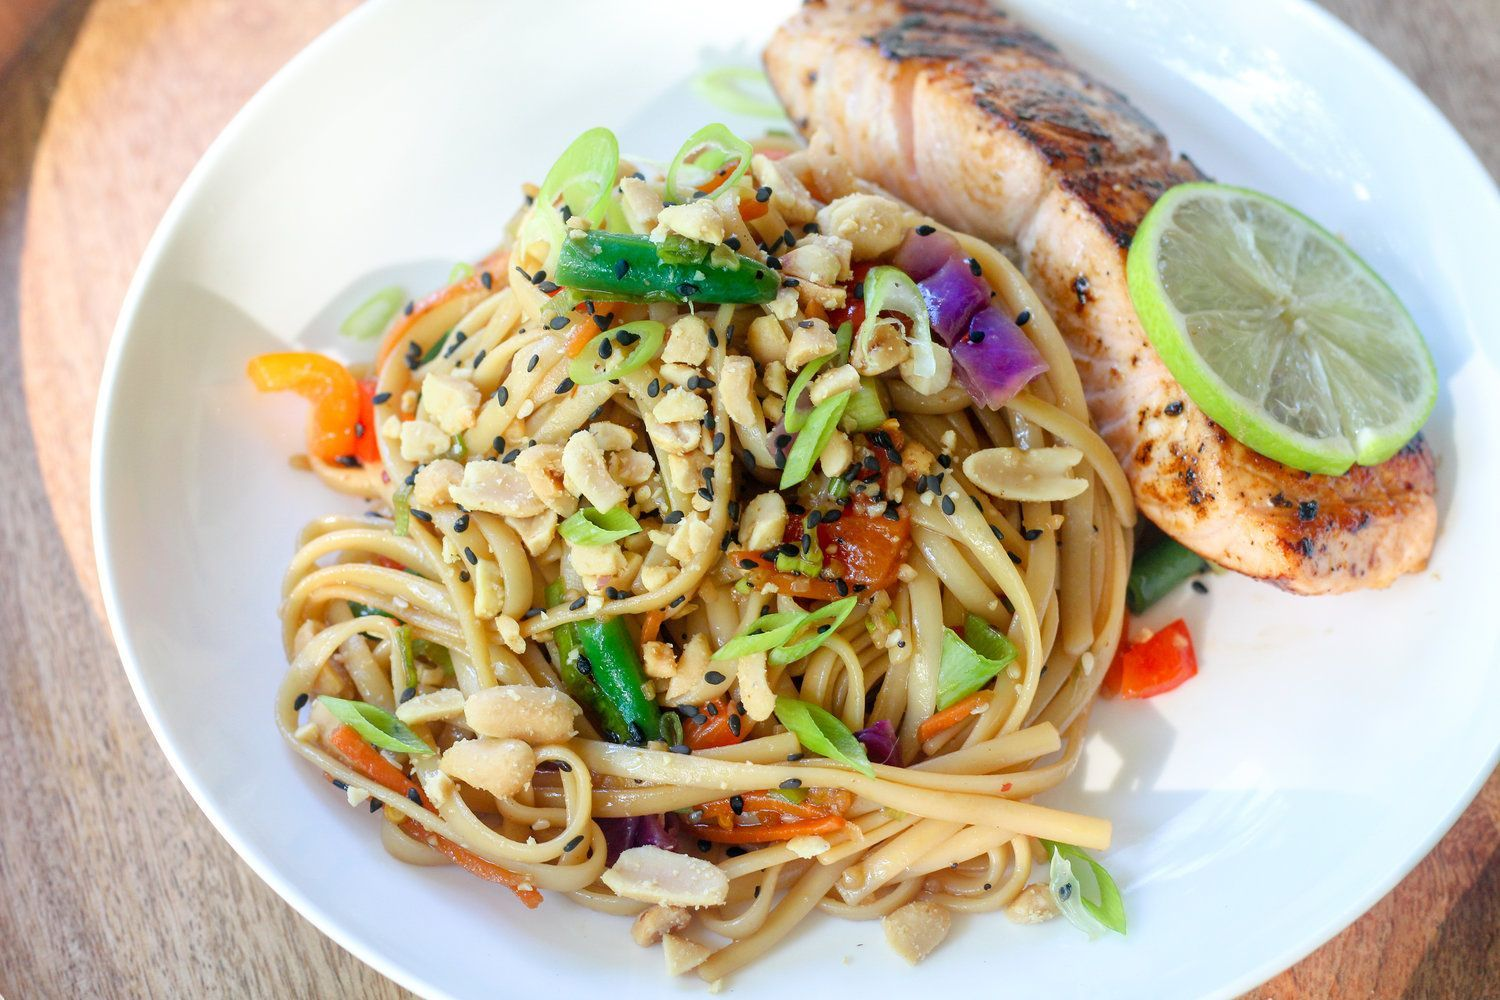 Sesame Noodles With Seared Salmon — Chef Swetha #searedsalmonrecipes Sesame Noodles With Seared Salmon — Chef Swetha #searedsalmonrecipes